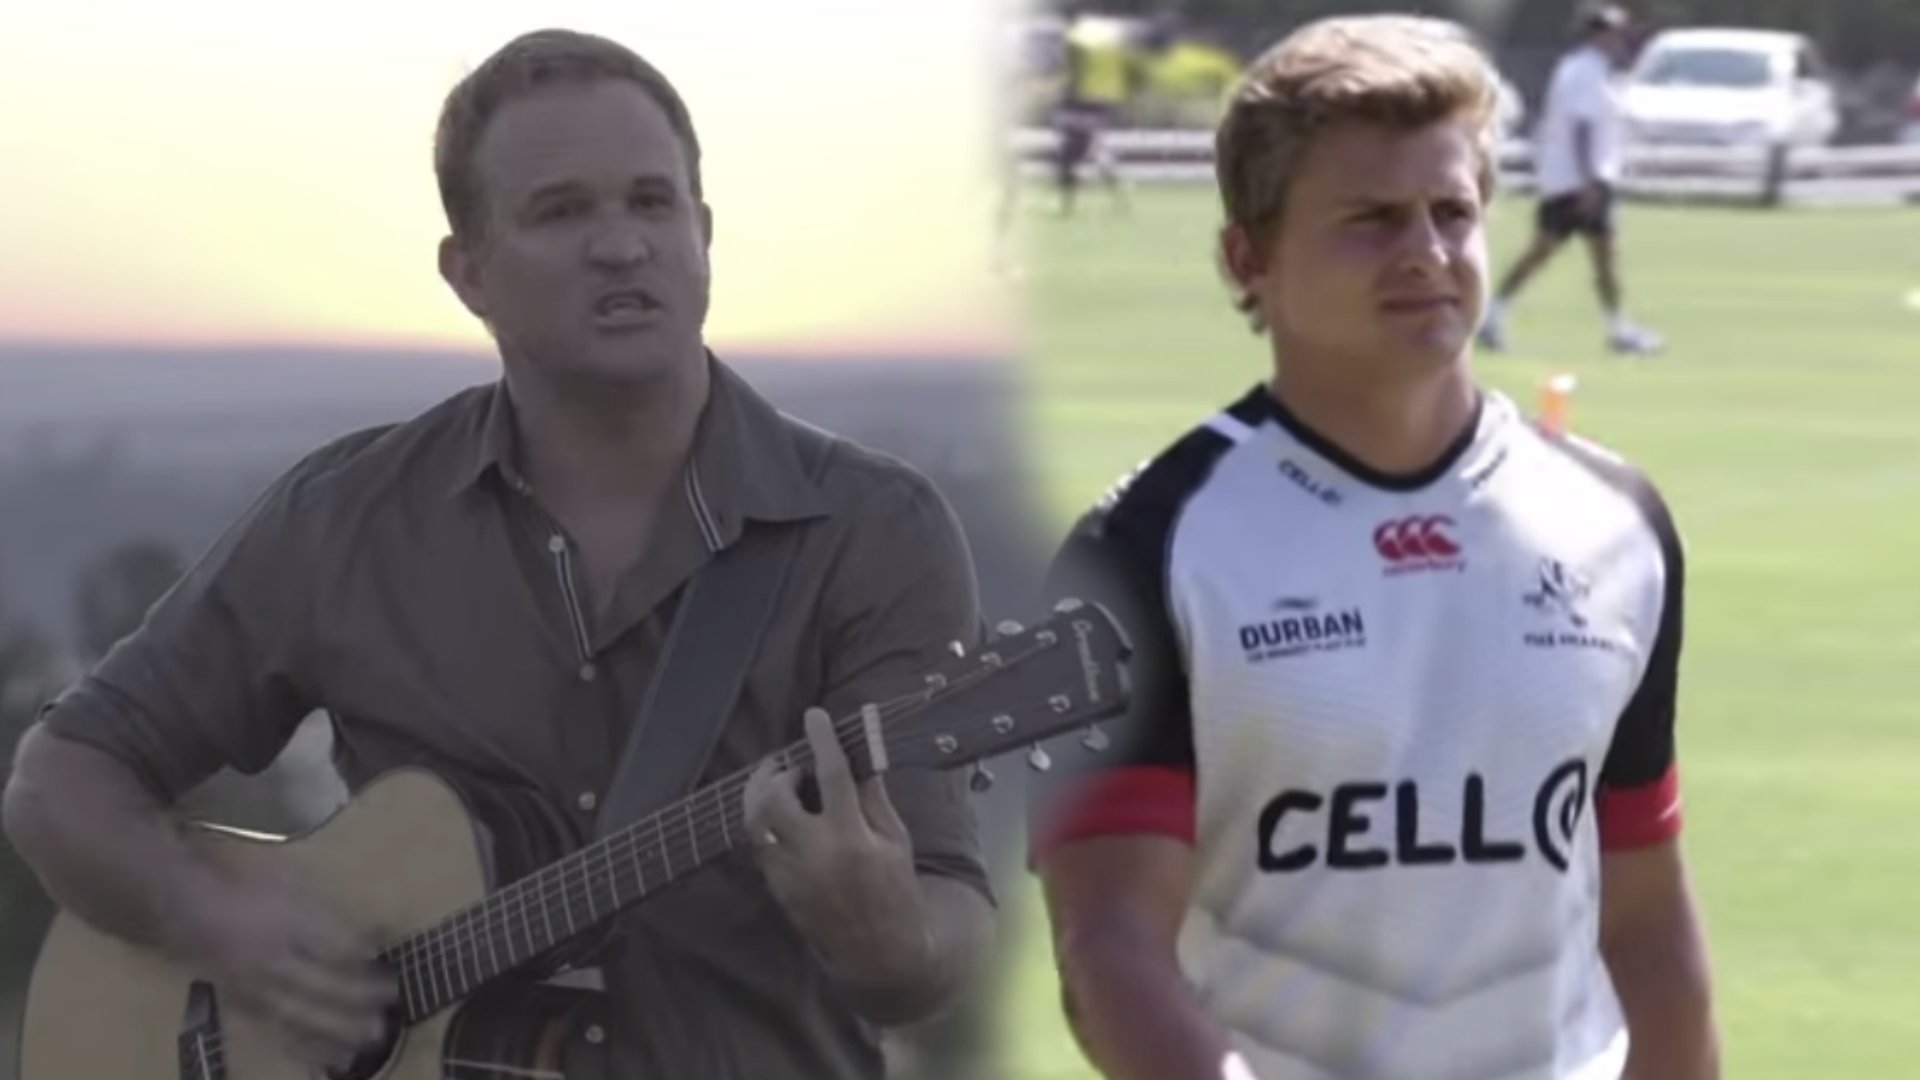 VIDEO: Someone has made a music video on Patrick Lambie, we don't know what to make of it